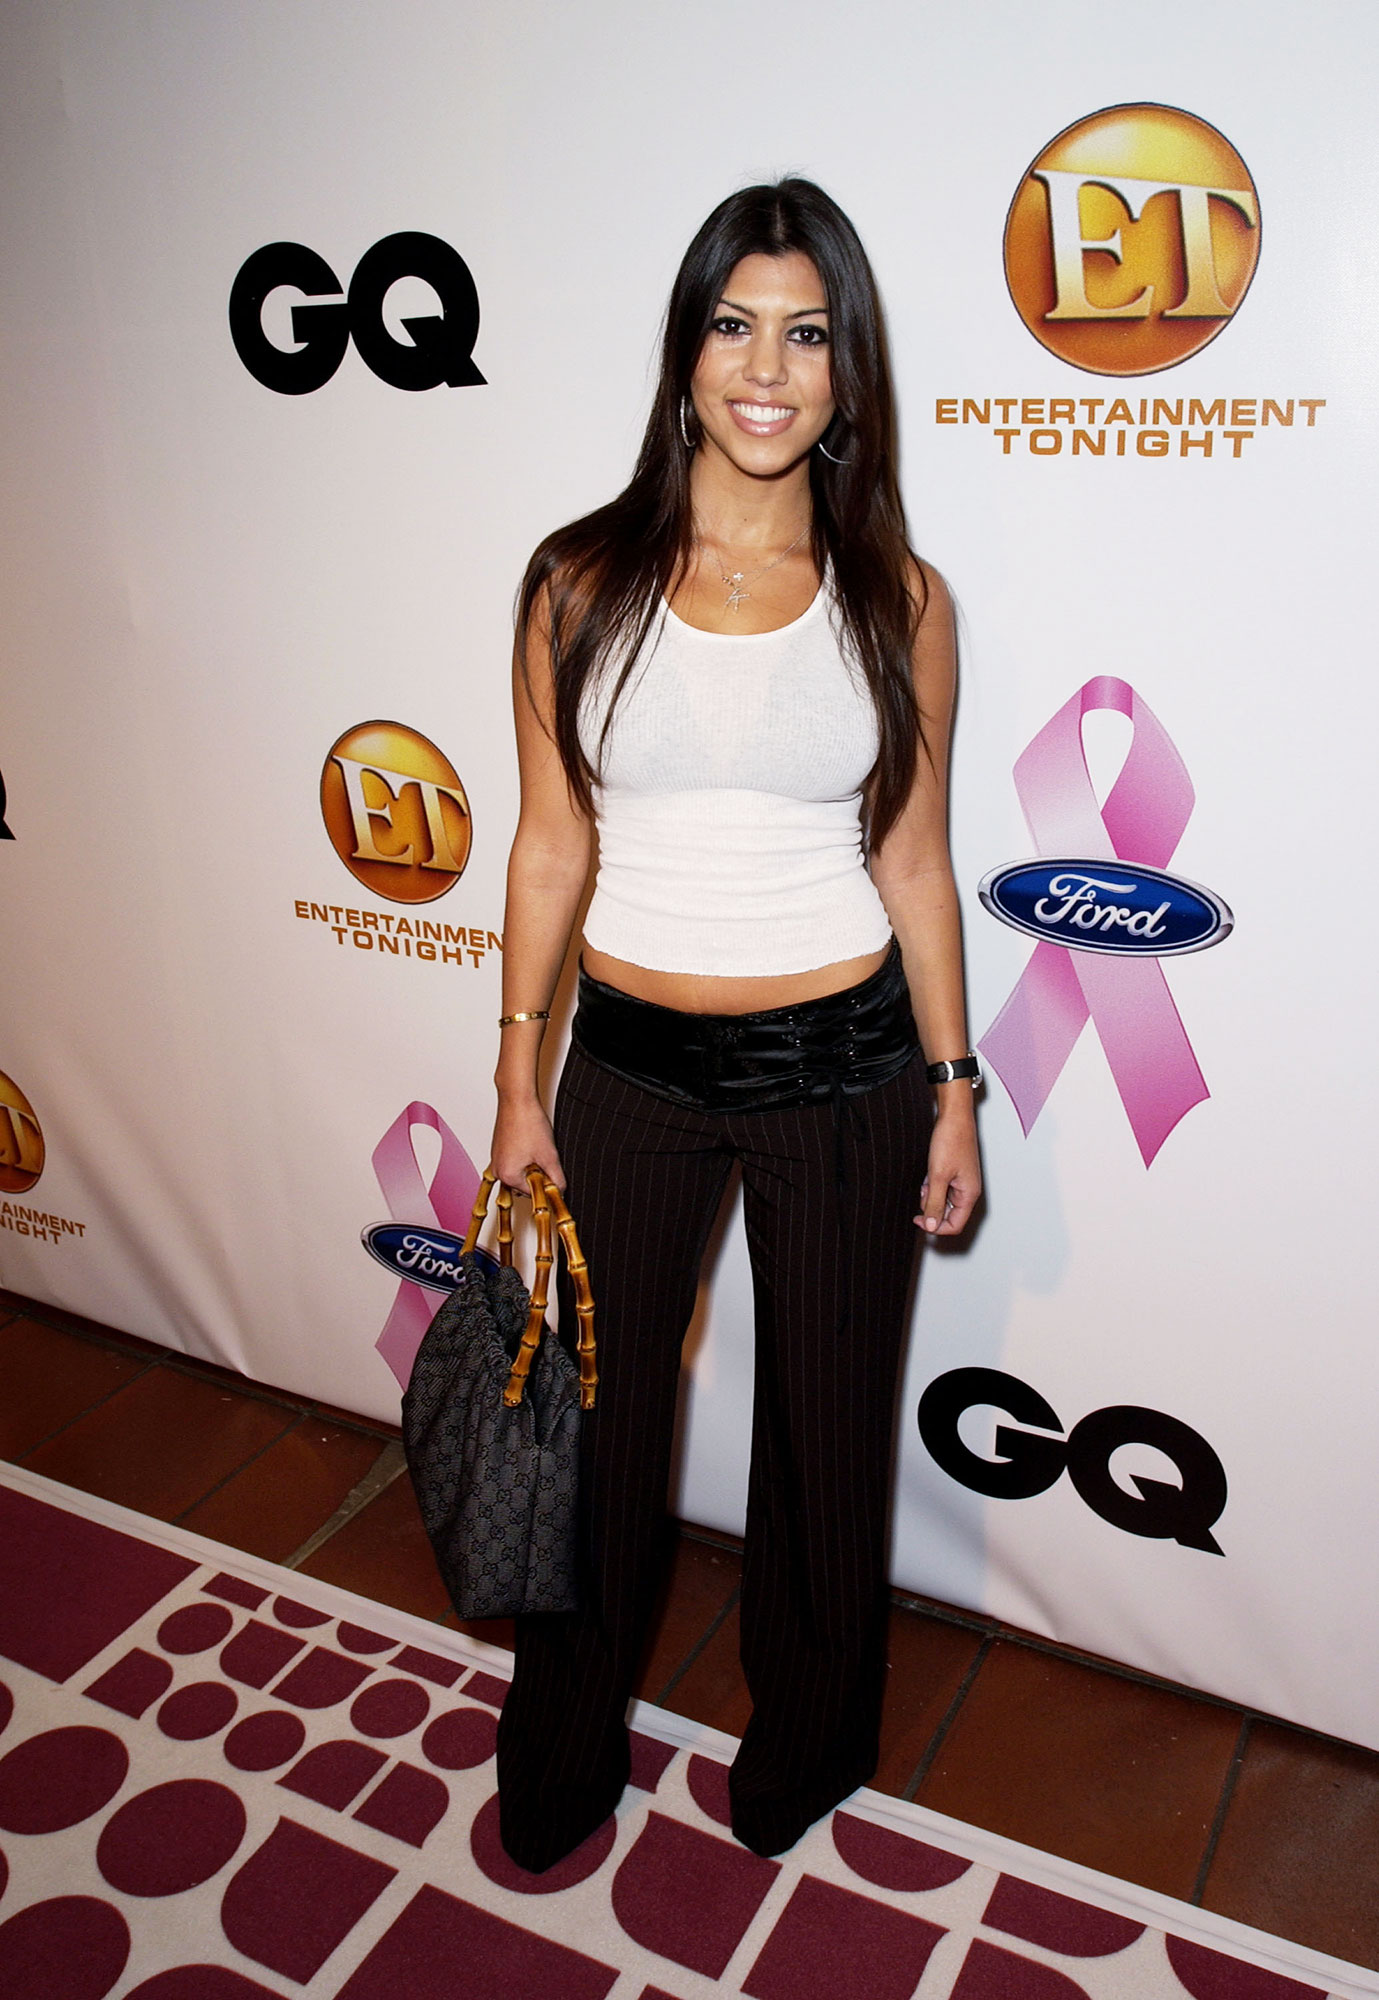 Happy 40th Birthday, Kourtney Kardashian - It doesn't get much more #TBT than the low-slung pants and a wife-beater the Keeping Up With the Kardashians star sported on one of her first red carpets.